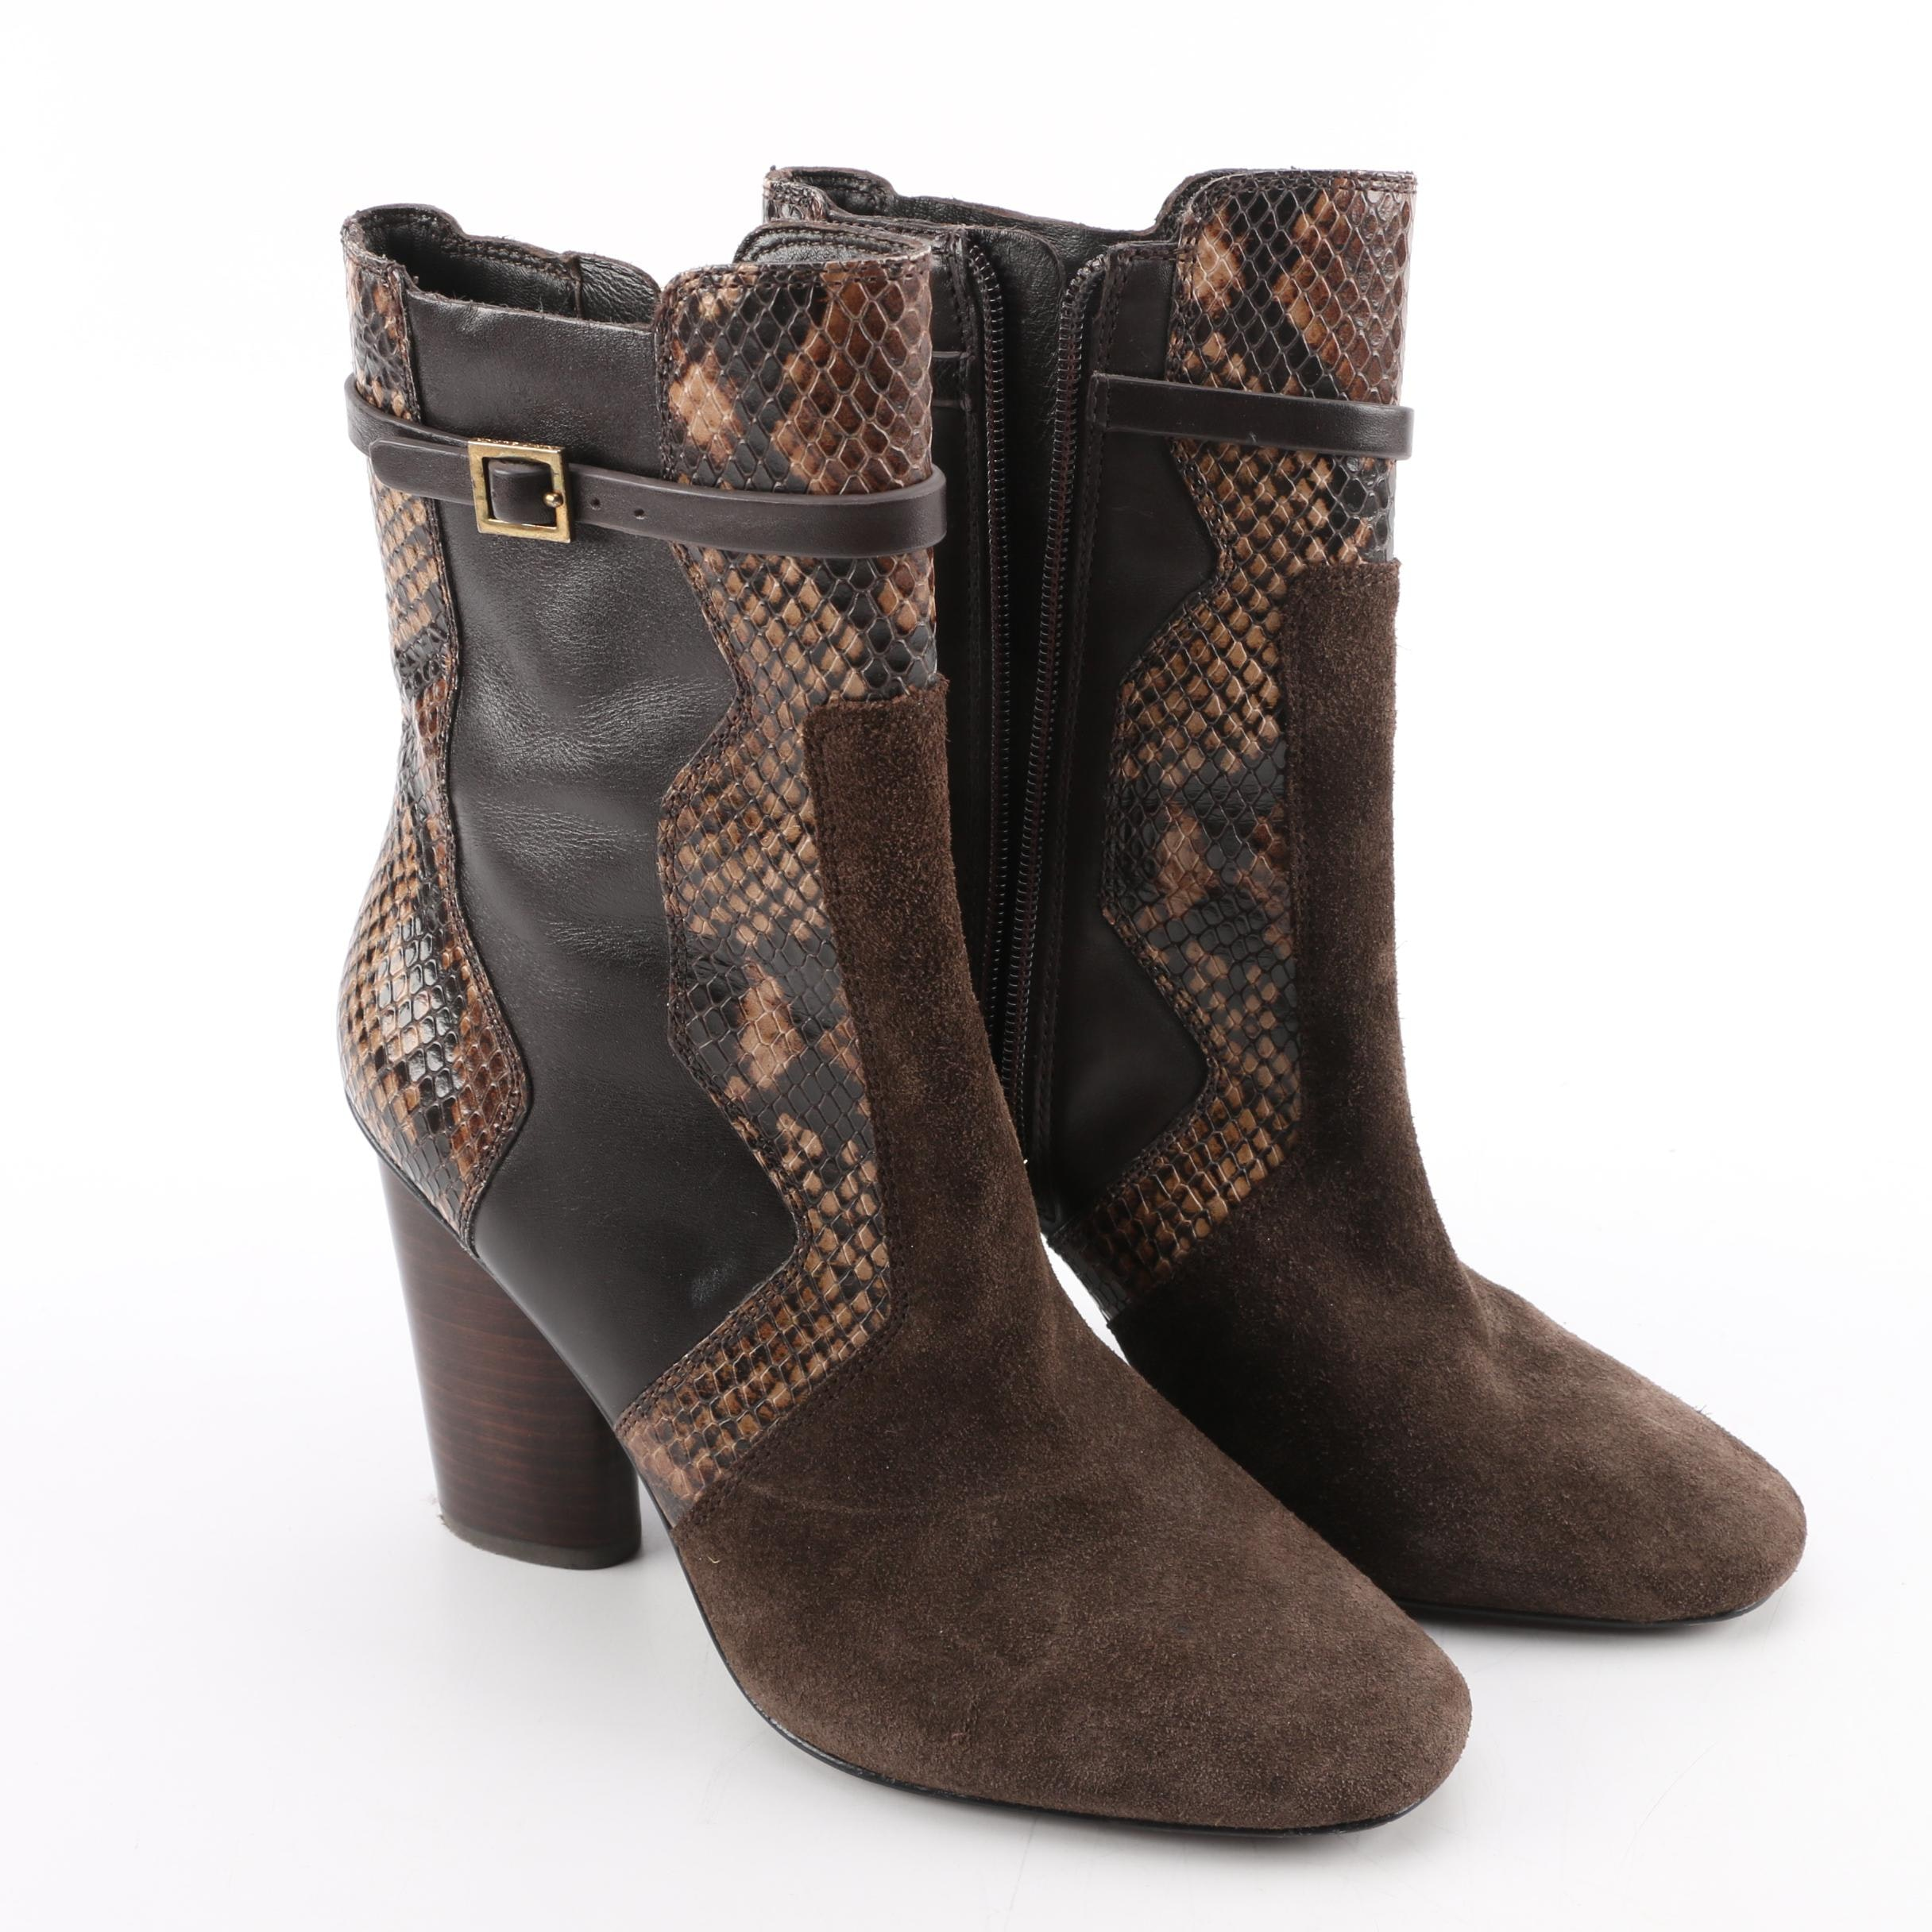 Tory Burch Brown Suede and Leather Boots